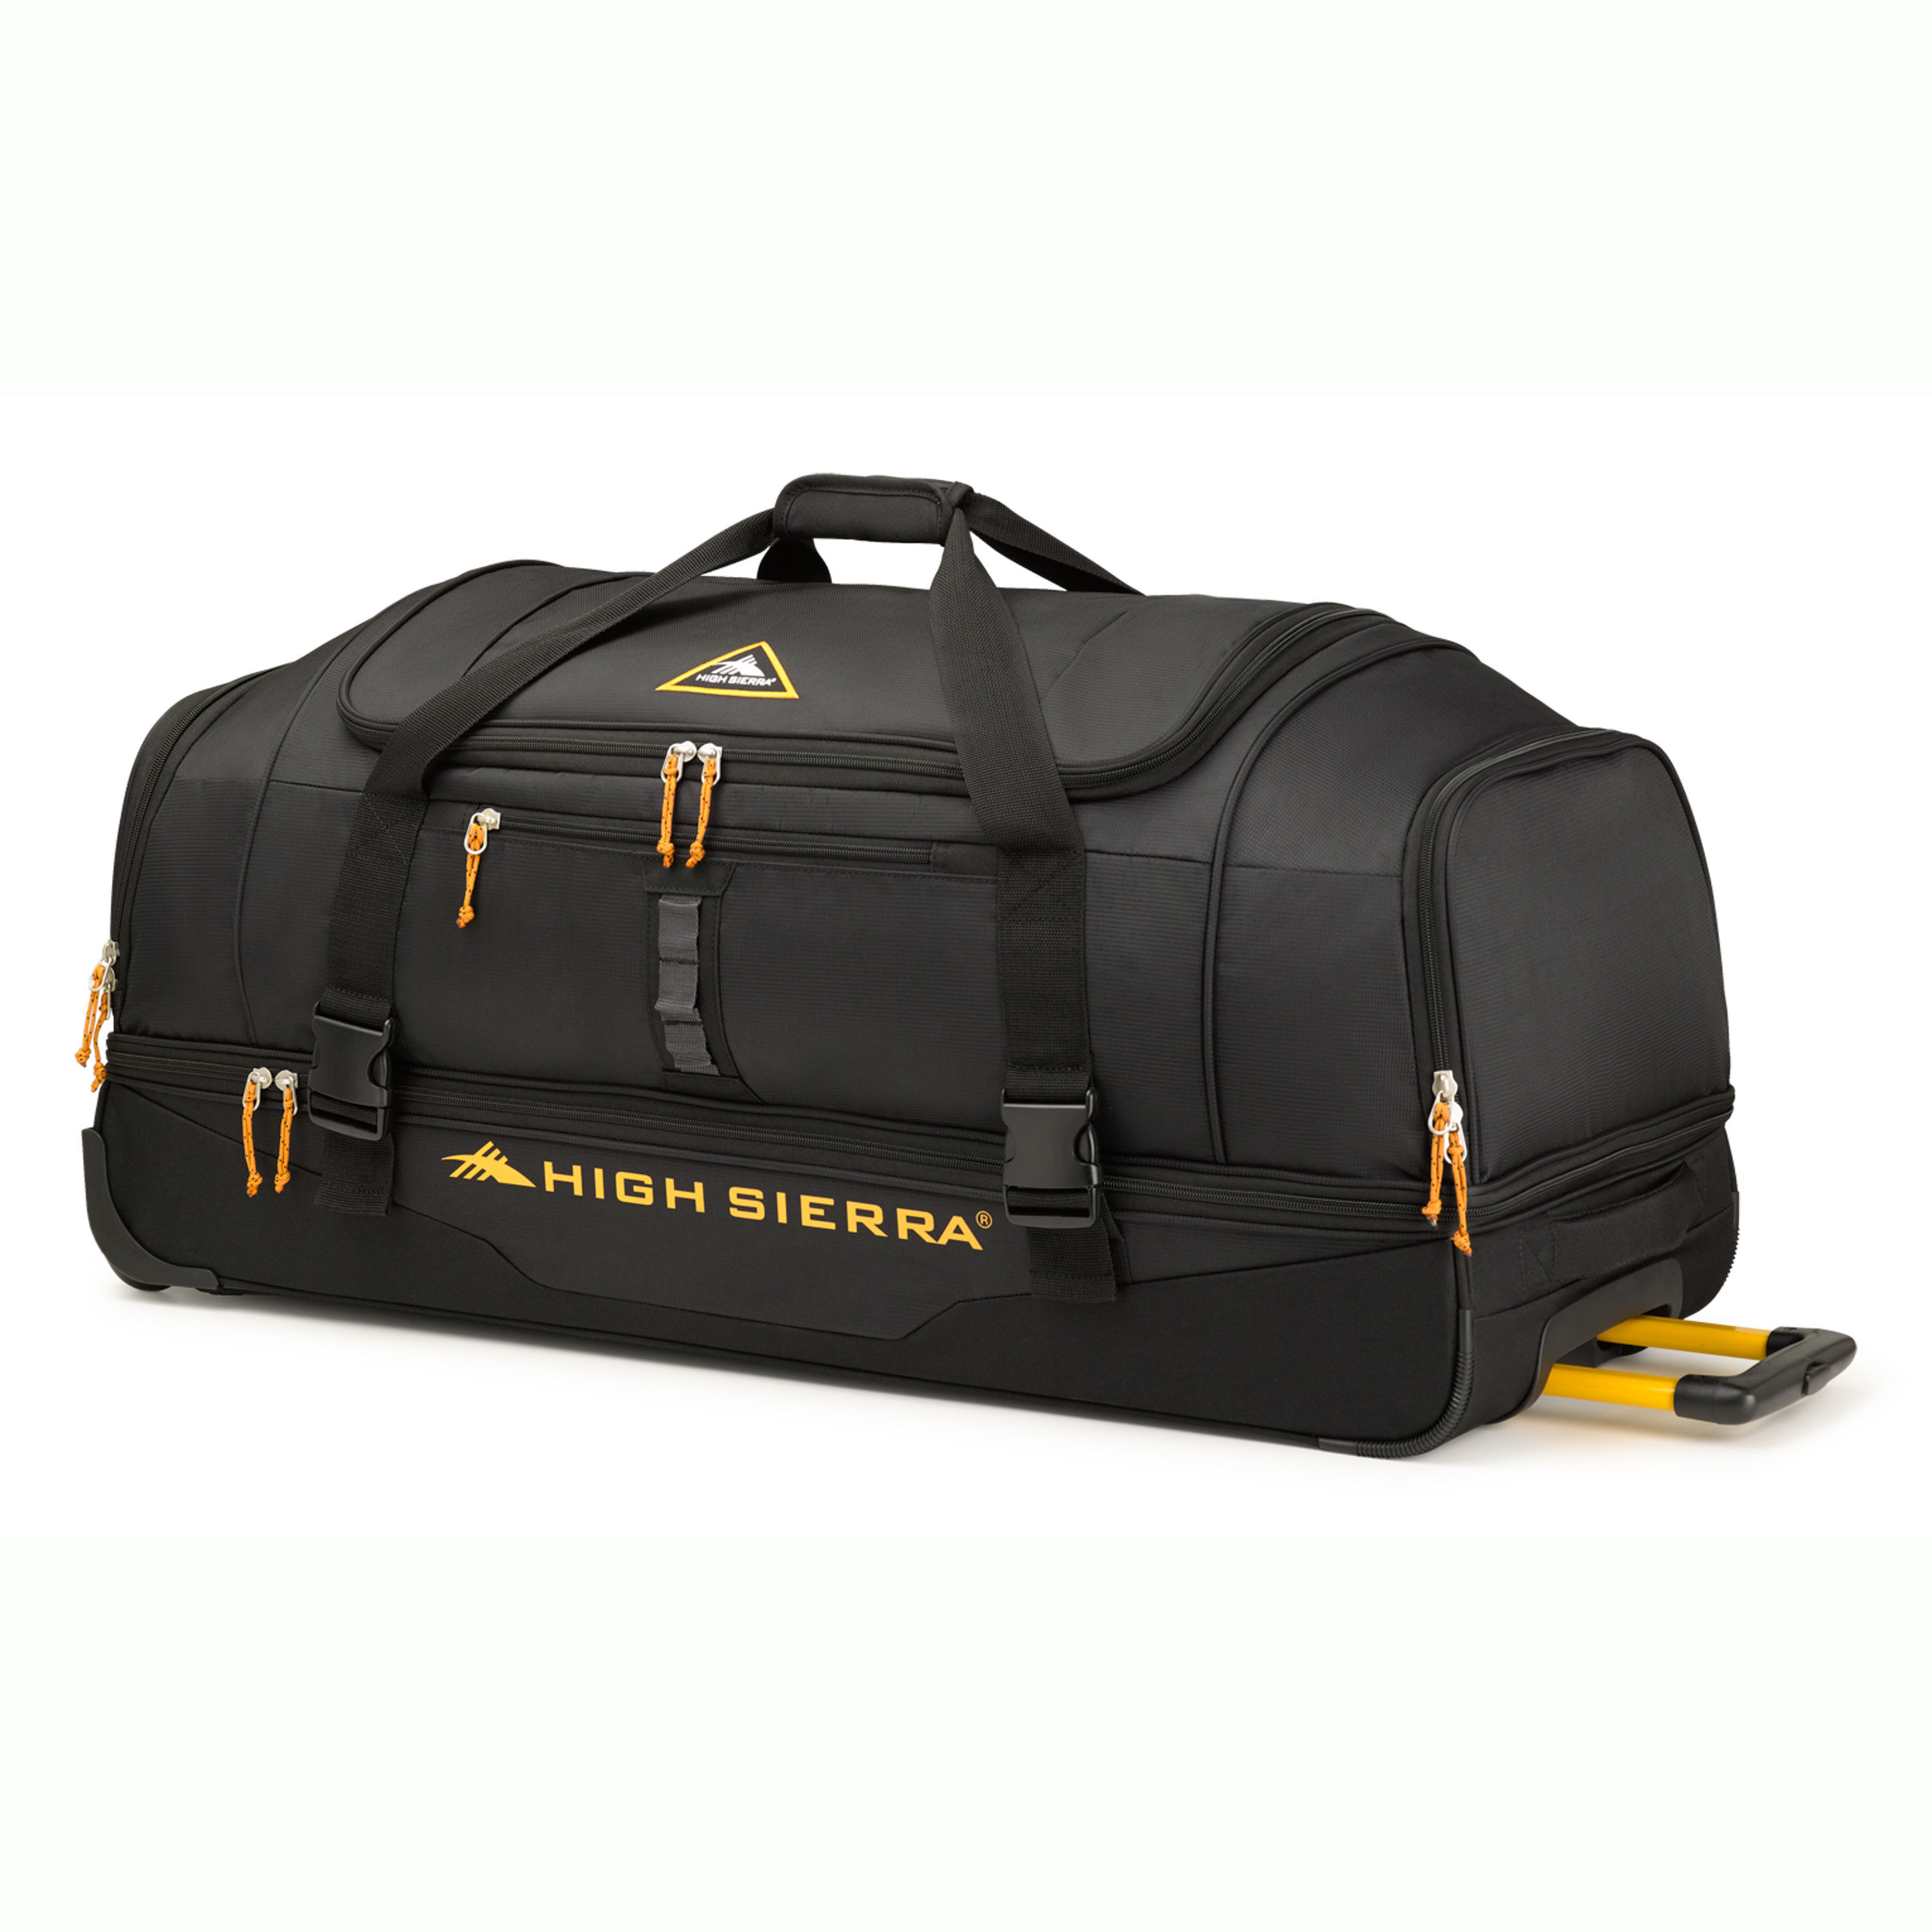 cb08bb54c1 High Sierra Pathway Series 36 In Drop-Bottom Duffel with Free S H —  CampSaver